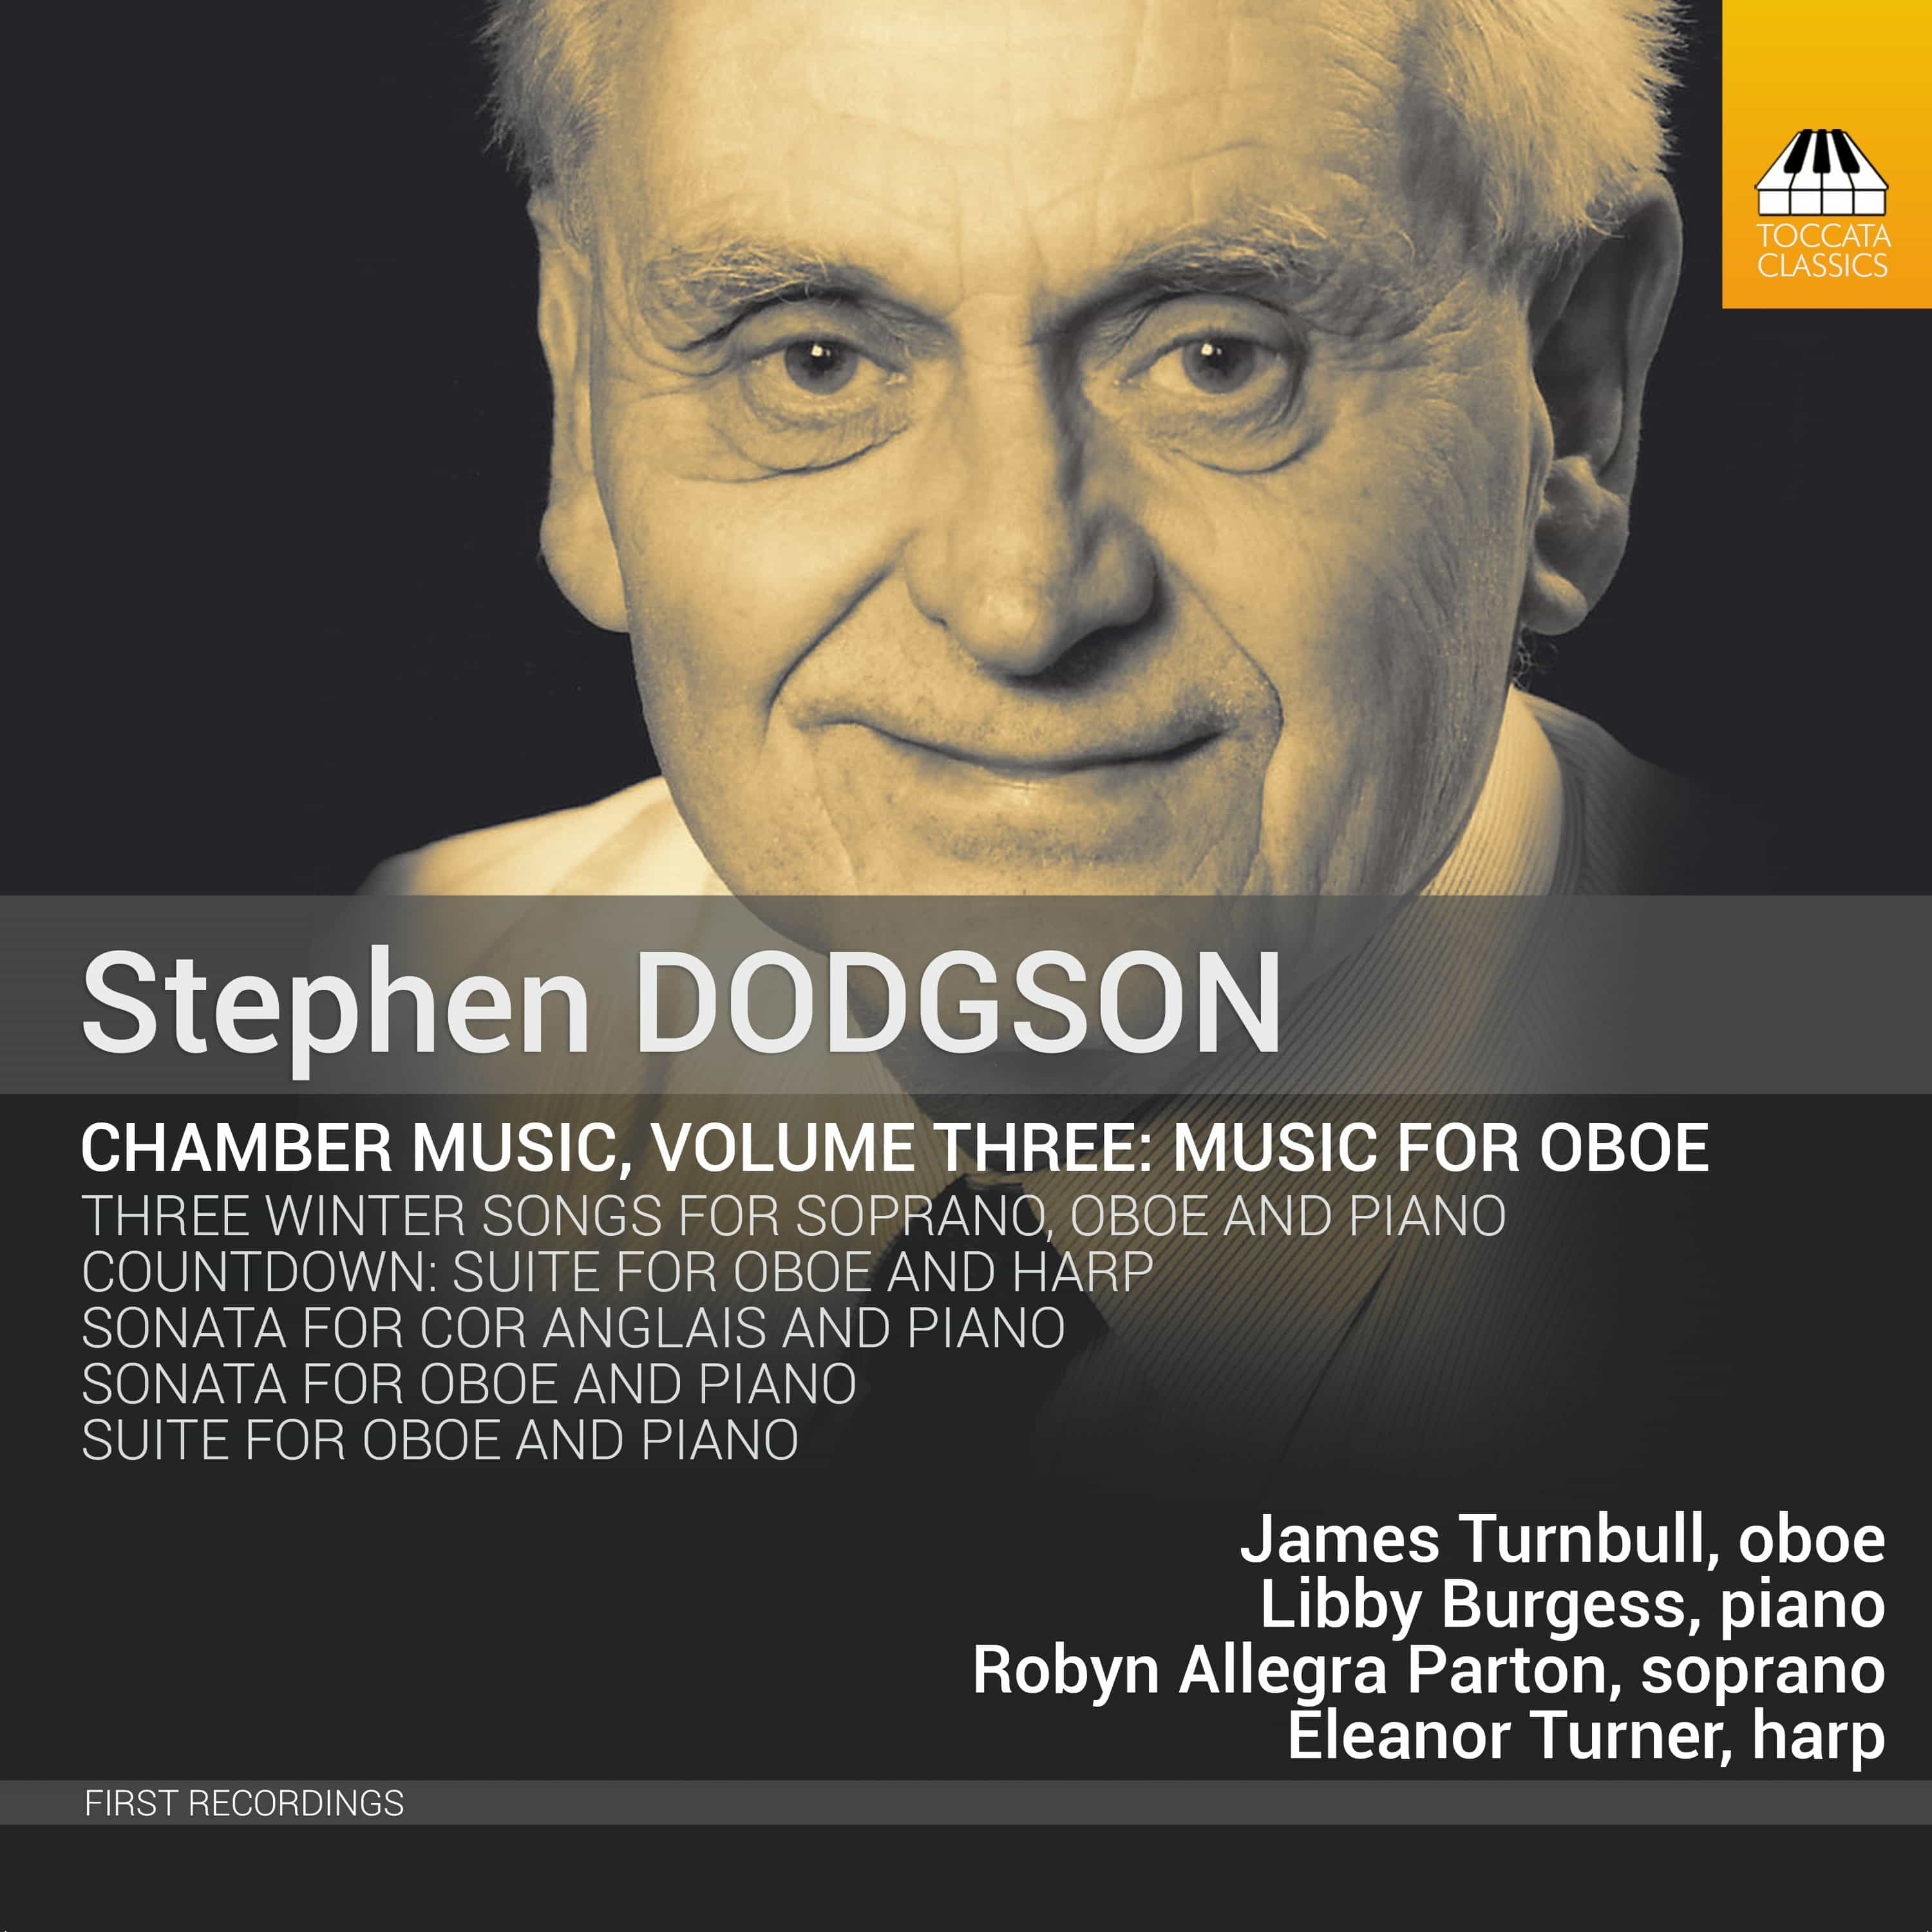 Stephen Dodgson: Chamber Music, Volume Three: Music for Oboe